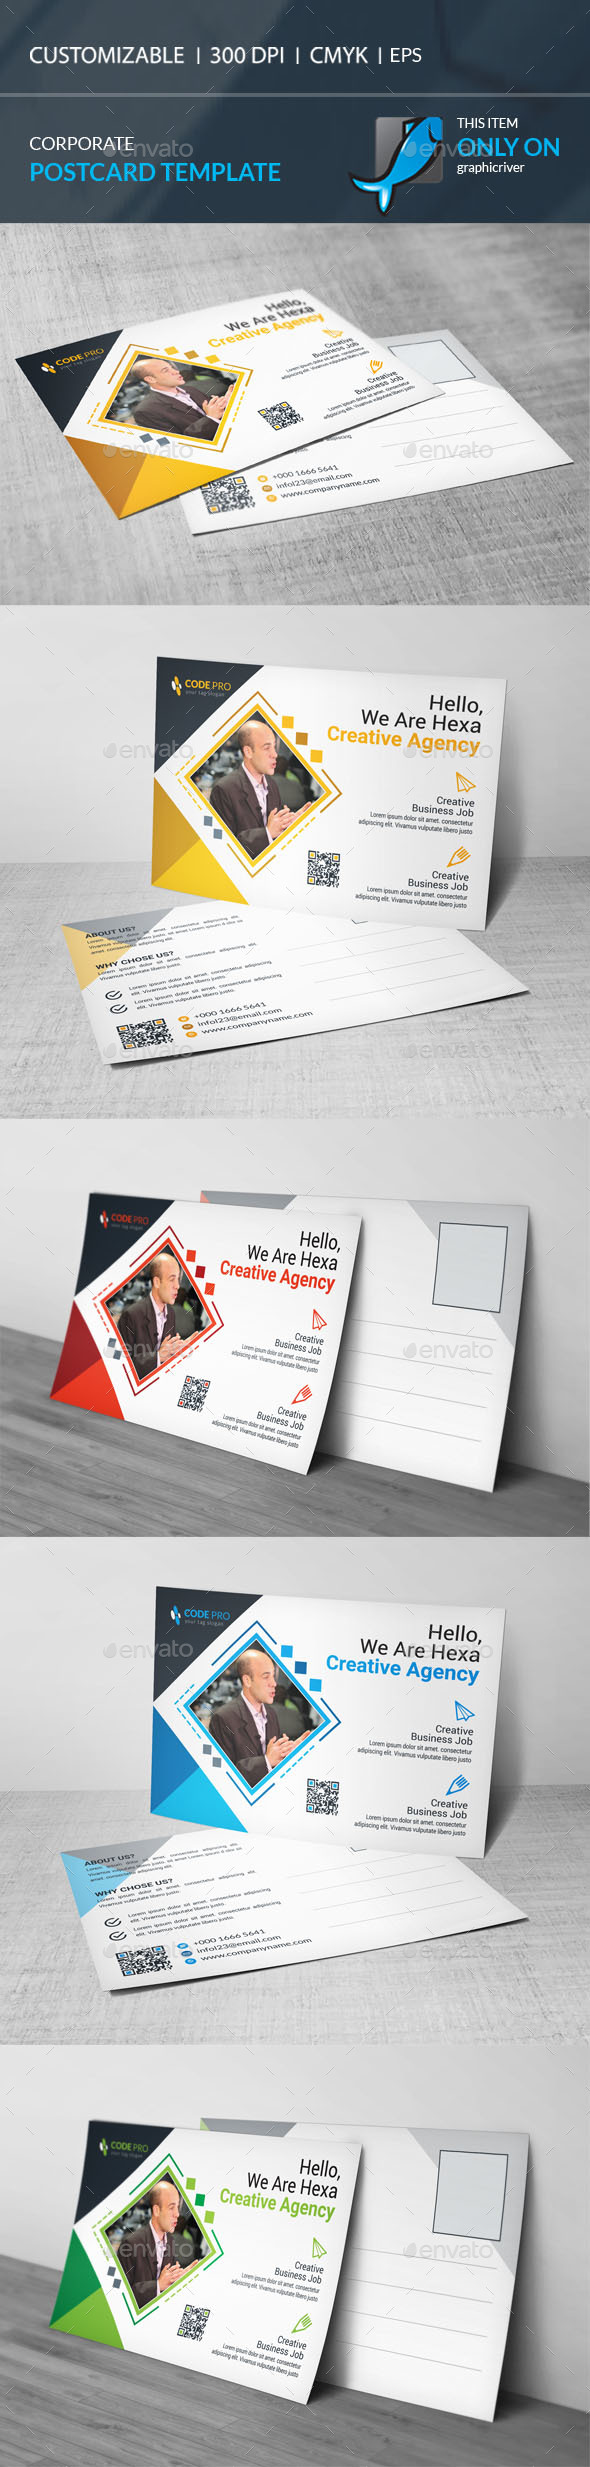 GraphicRiver Postcard Template 20345989